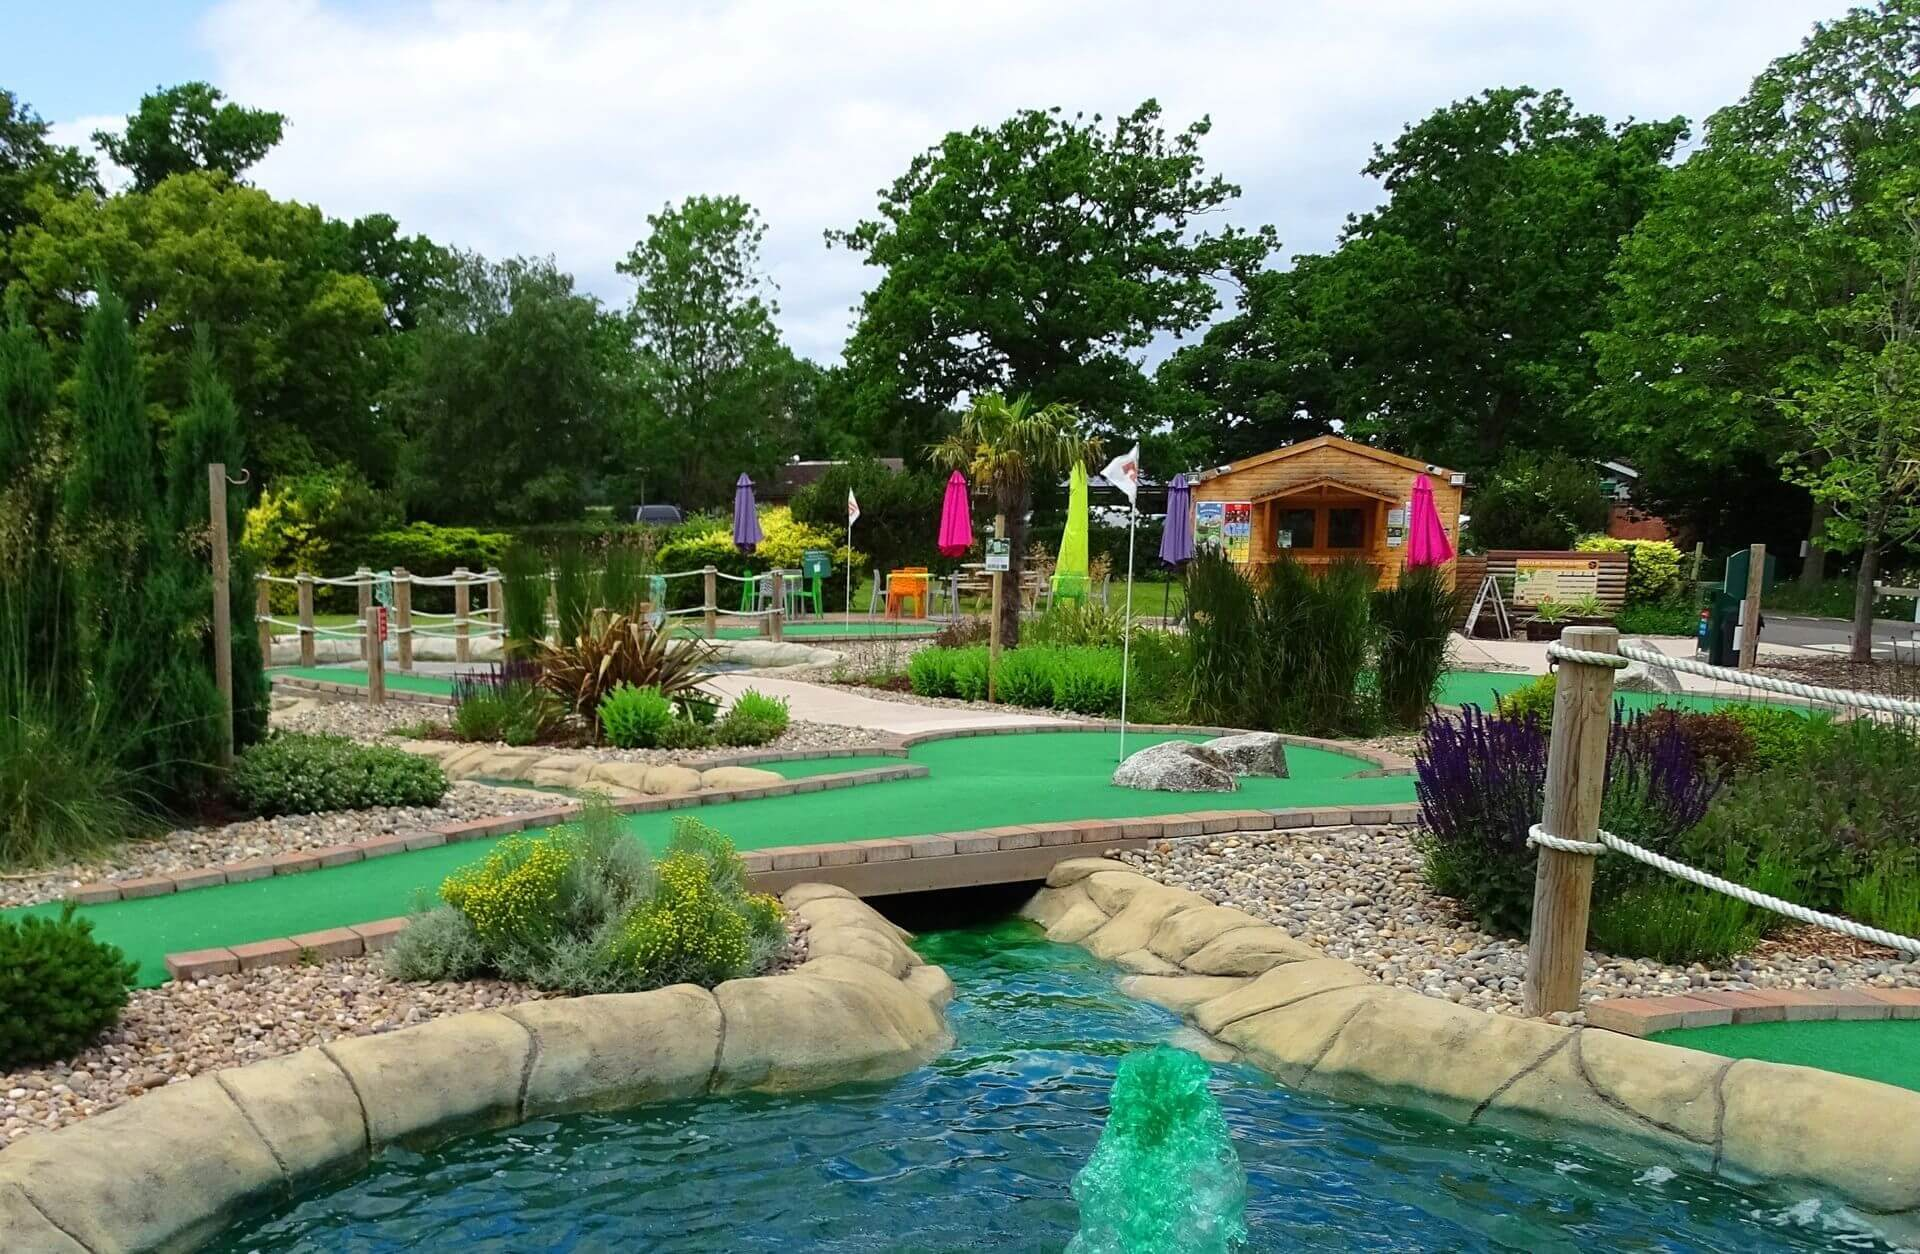 four-ashes-adventure-golf-02-1920-1254